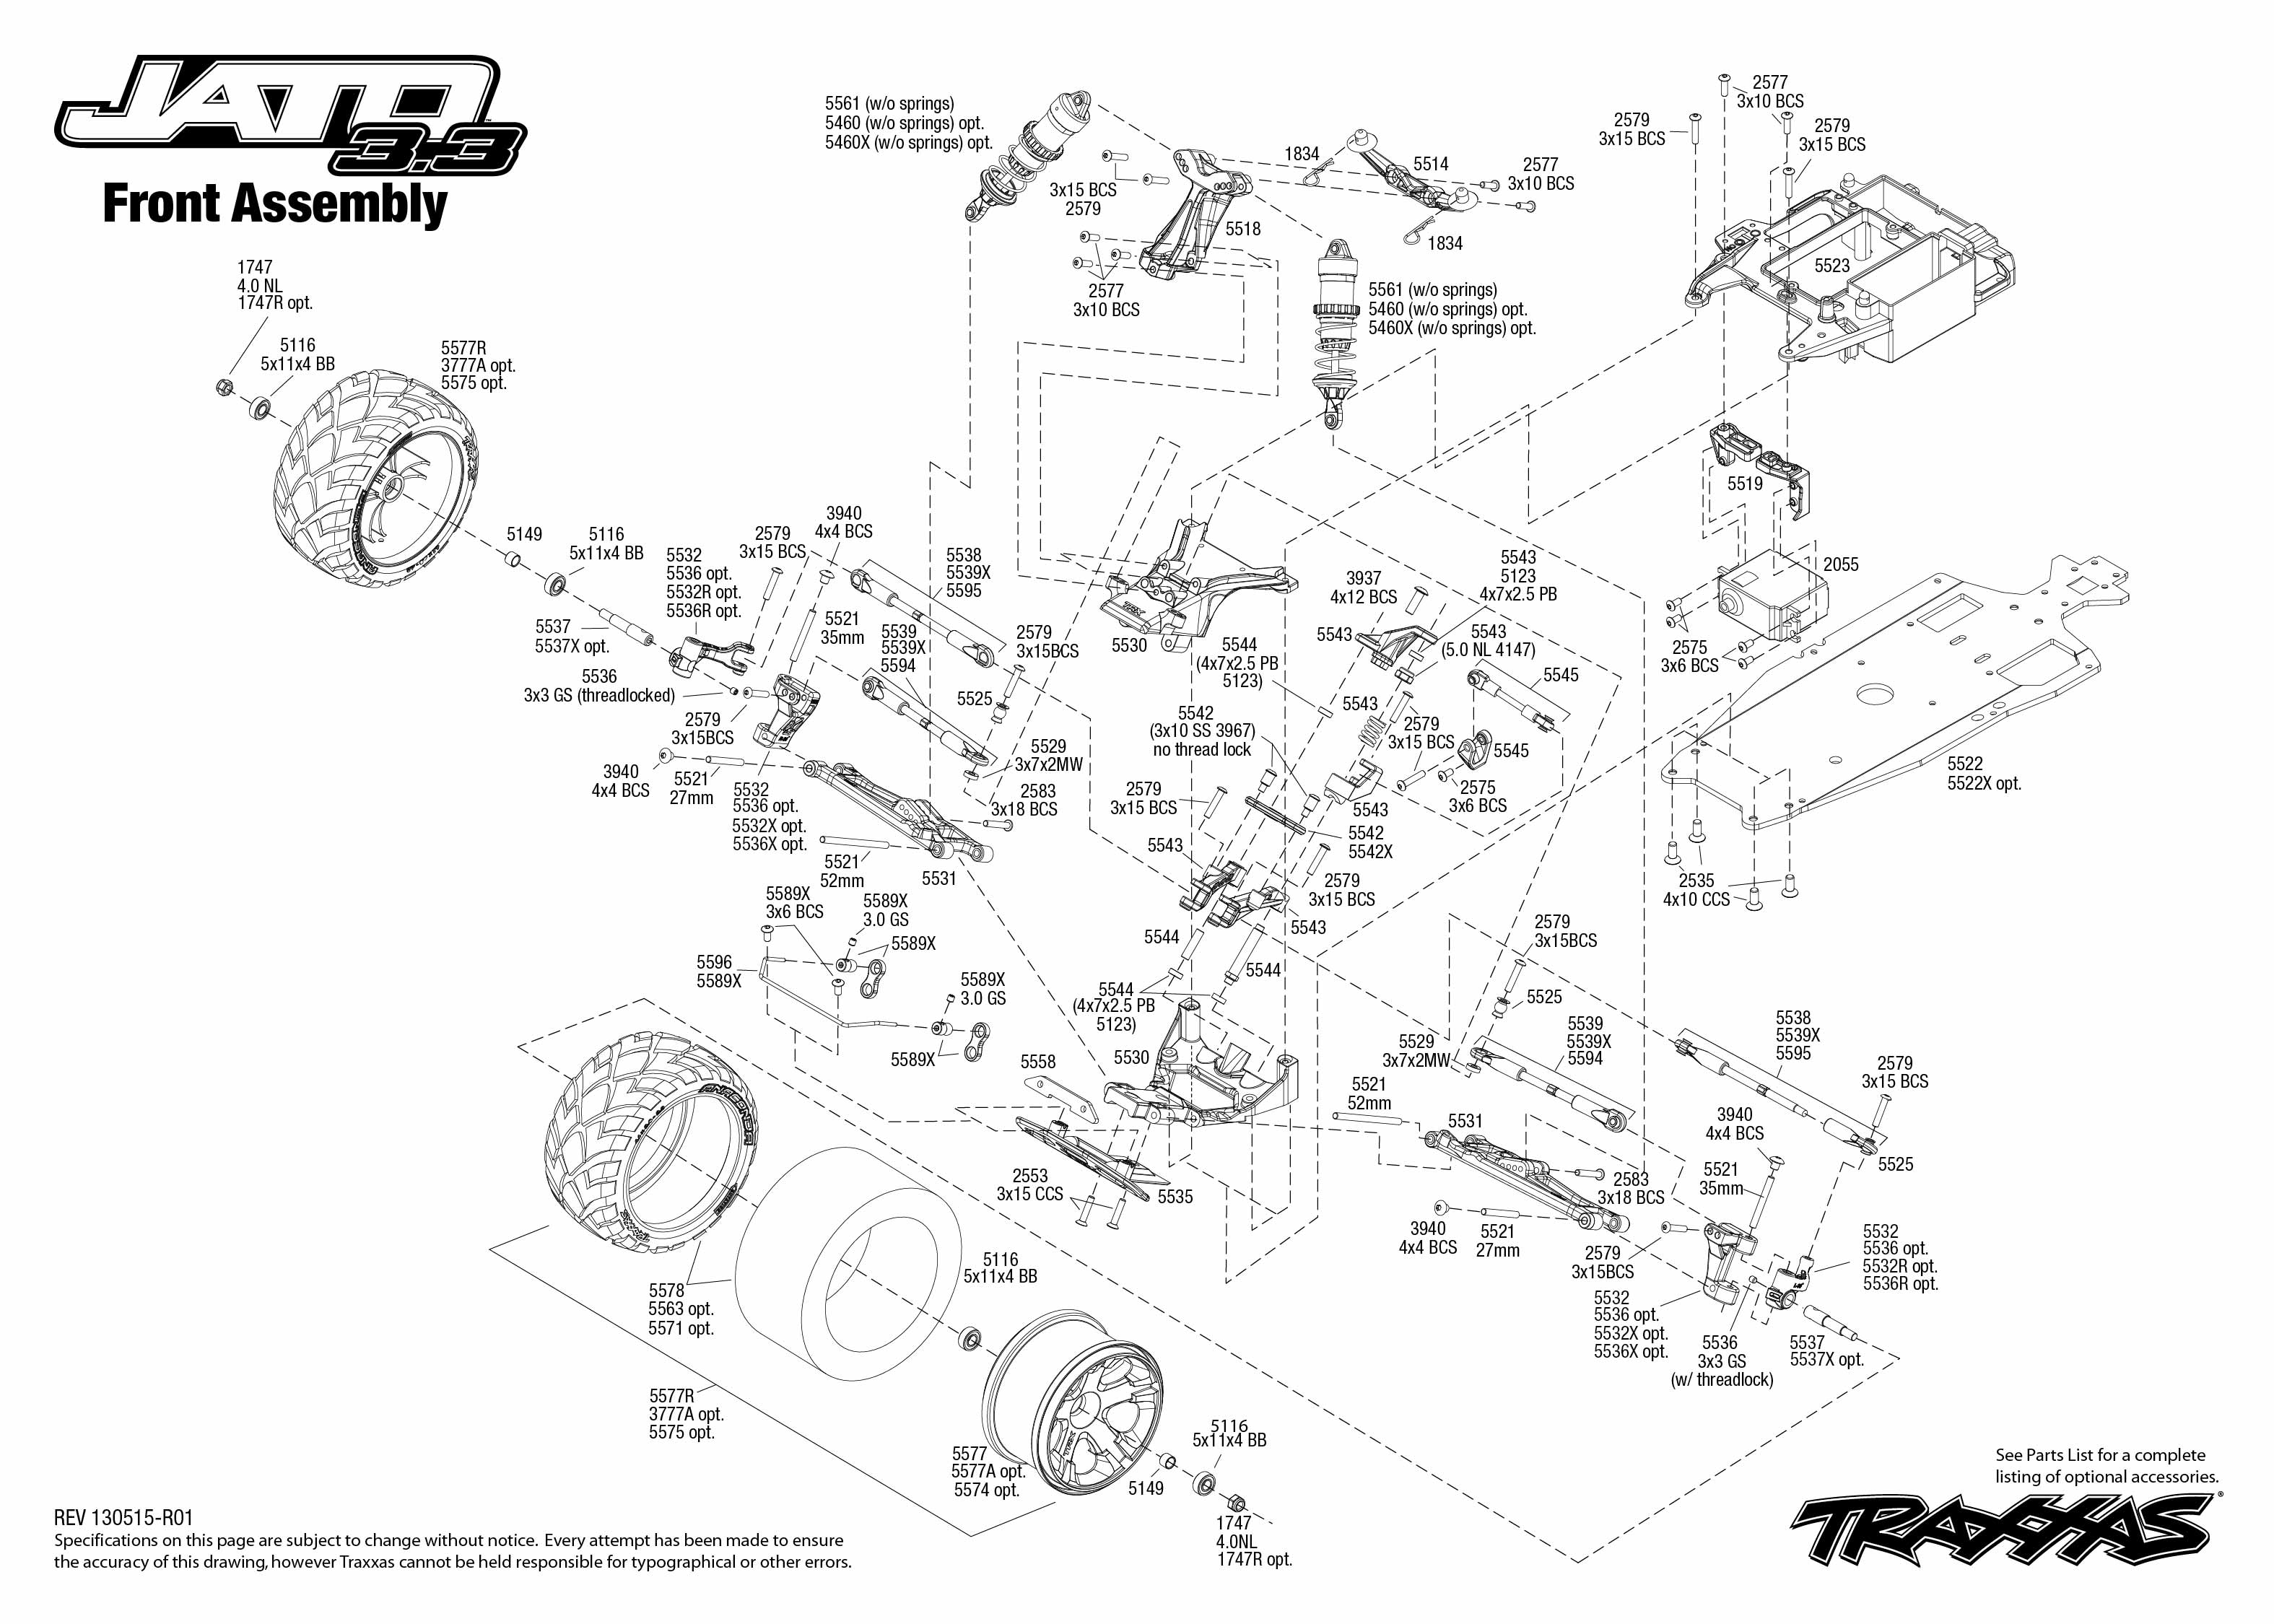 traxxas rustler vxl parts diagram best tool to draw uml diagrams engine 3 caburator wiring ~ elsalvadorla